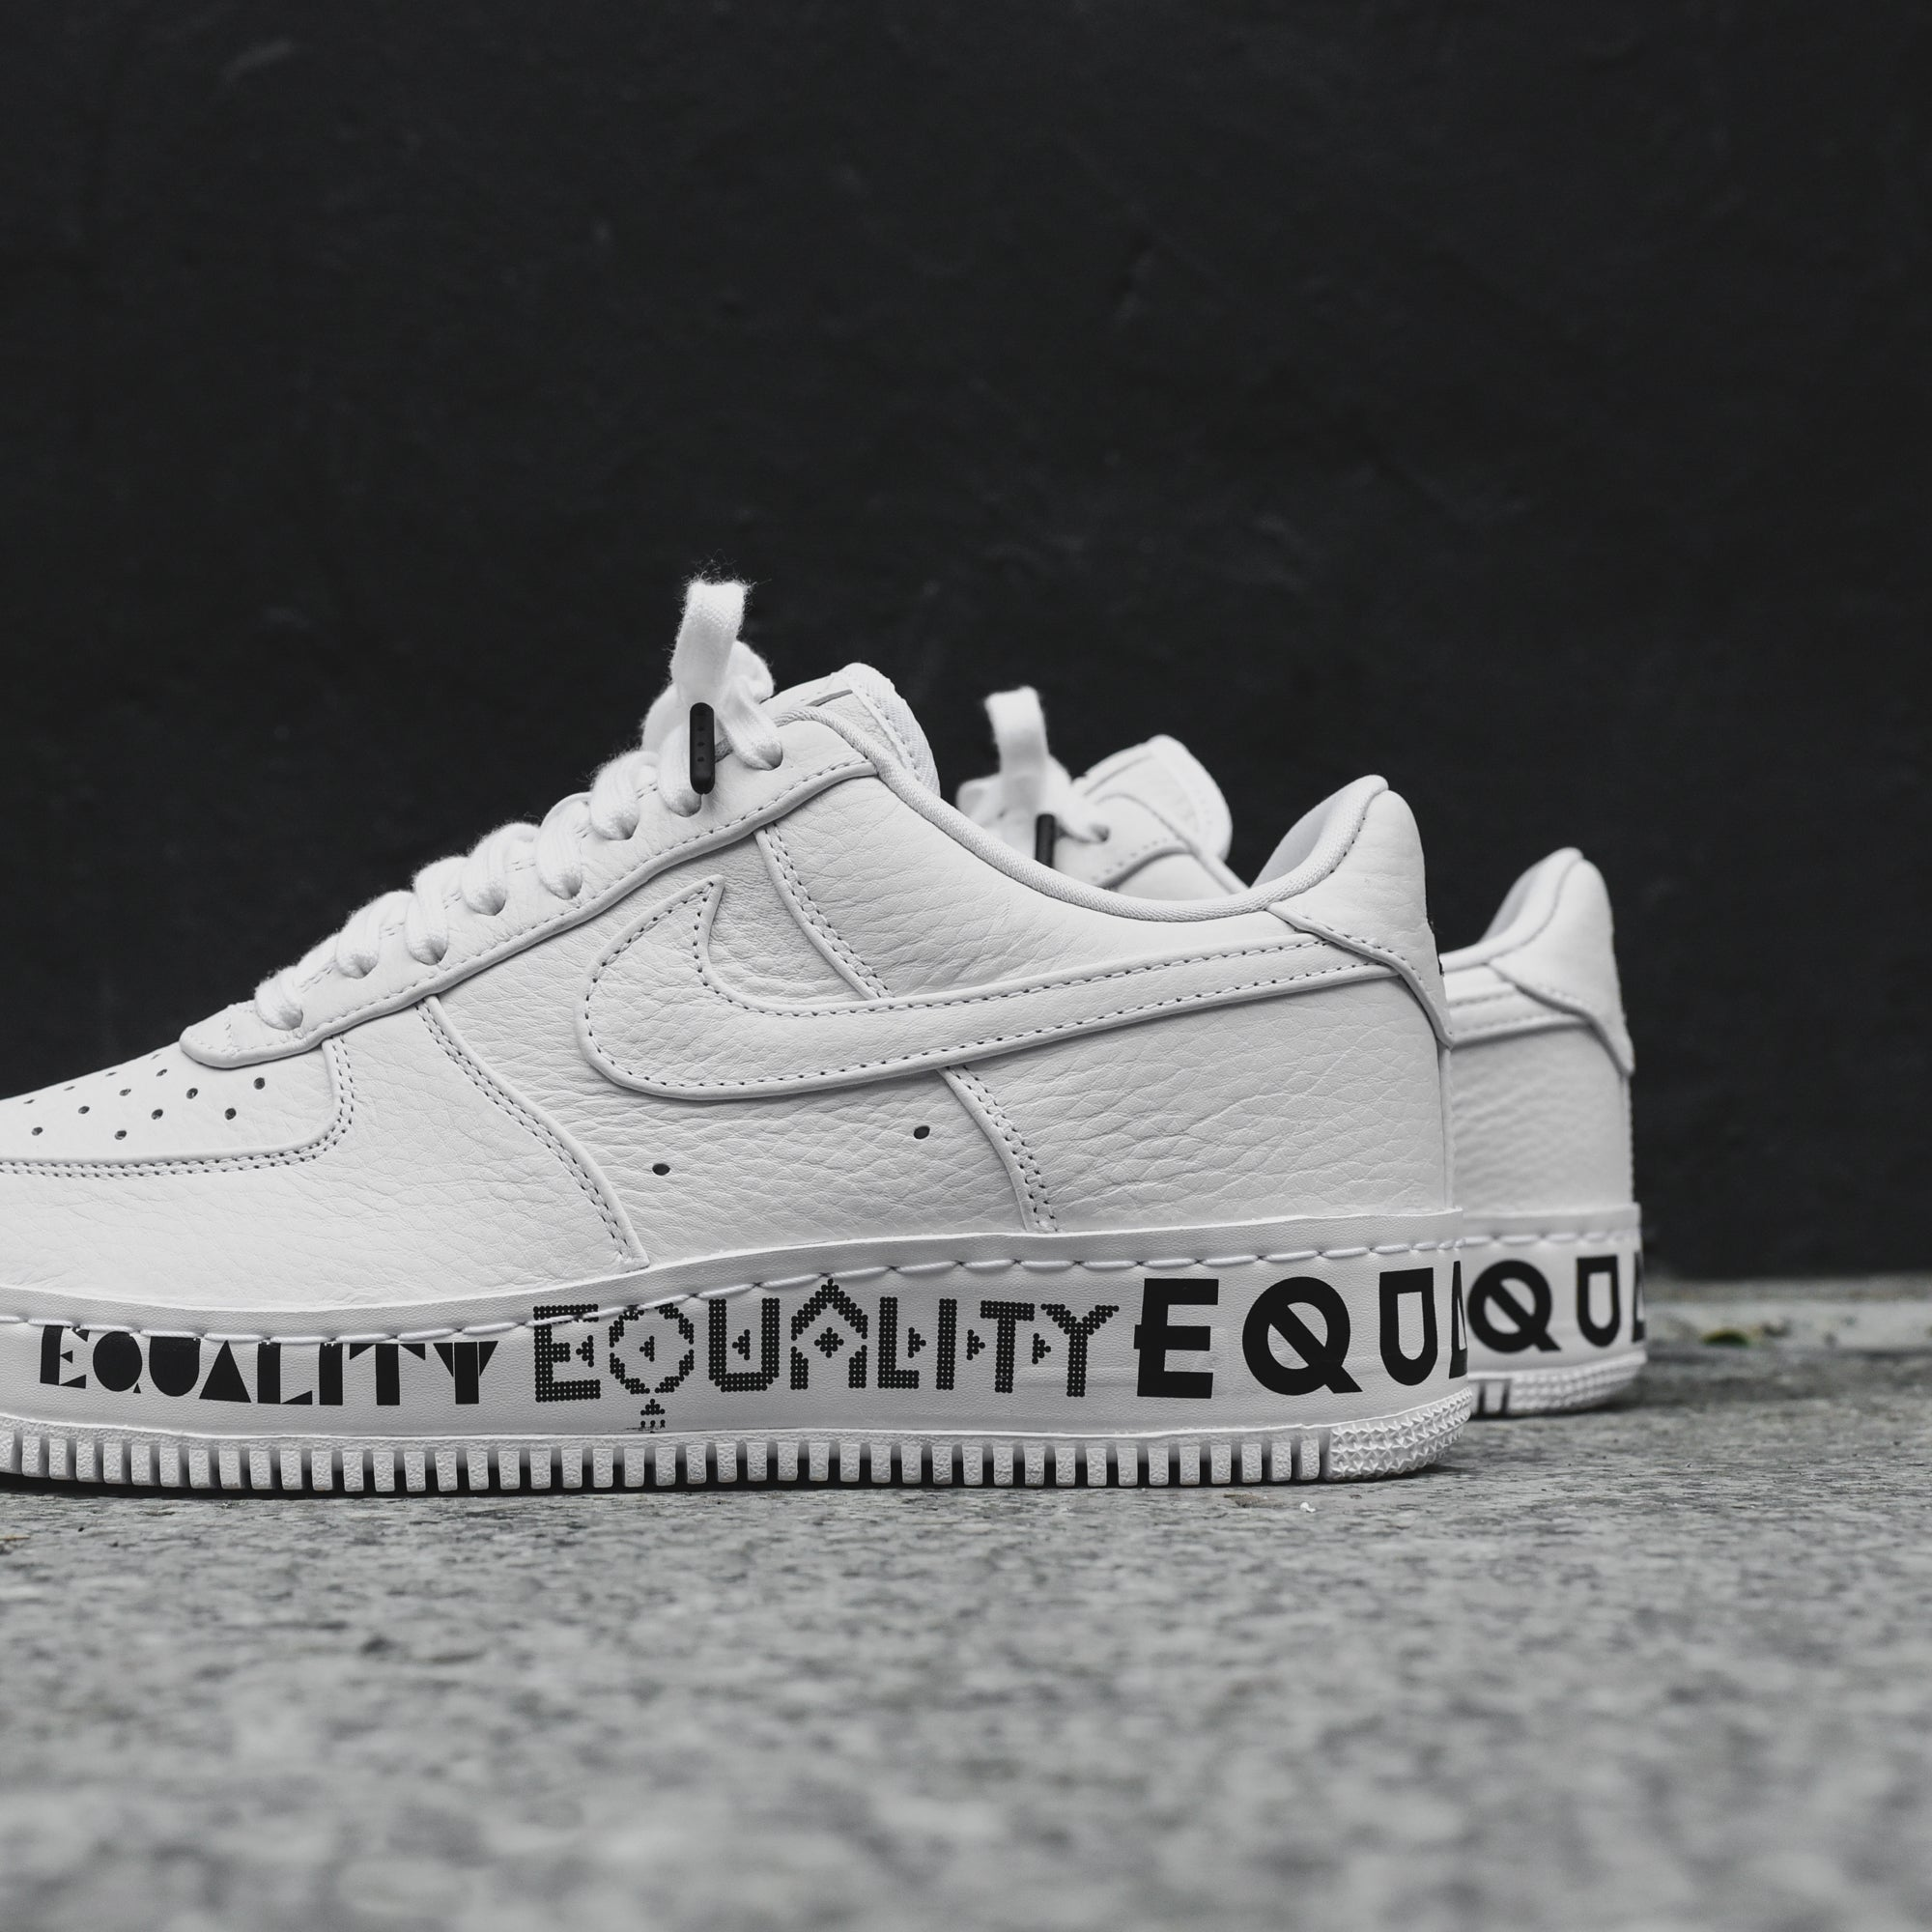 best service 89ac6 15036 Nike Air Force 1 Low CMFT Equality - White / Black – Kith